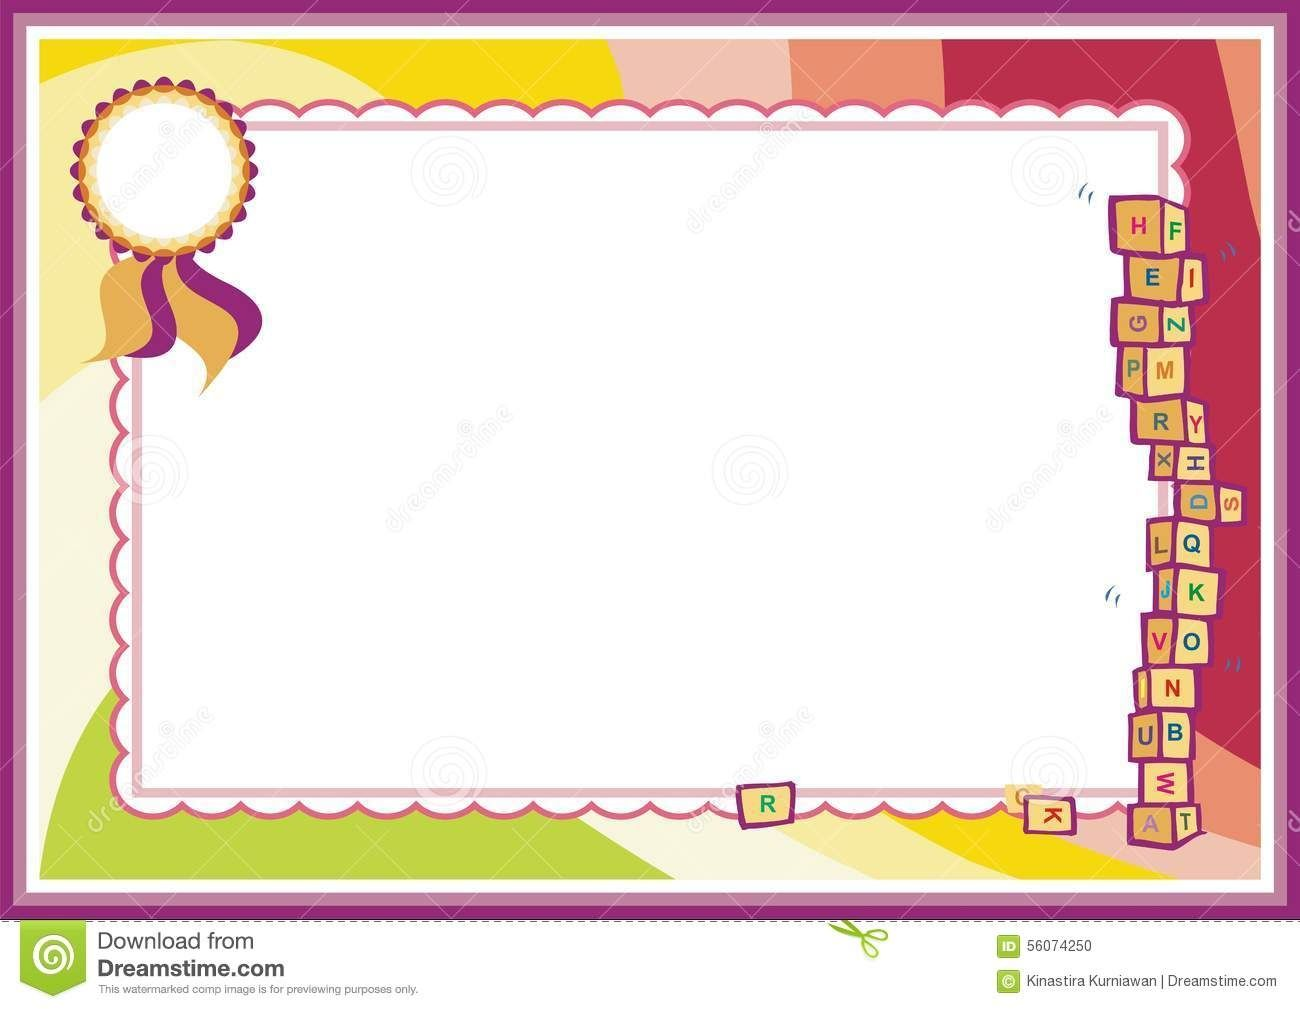 Certificate background. Sample designs of borders